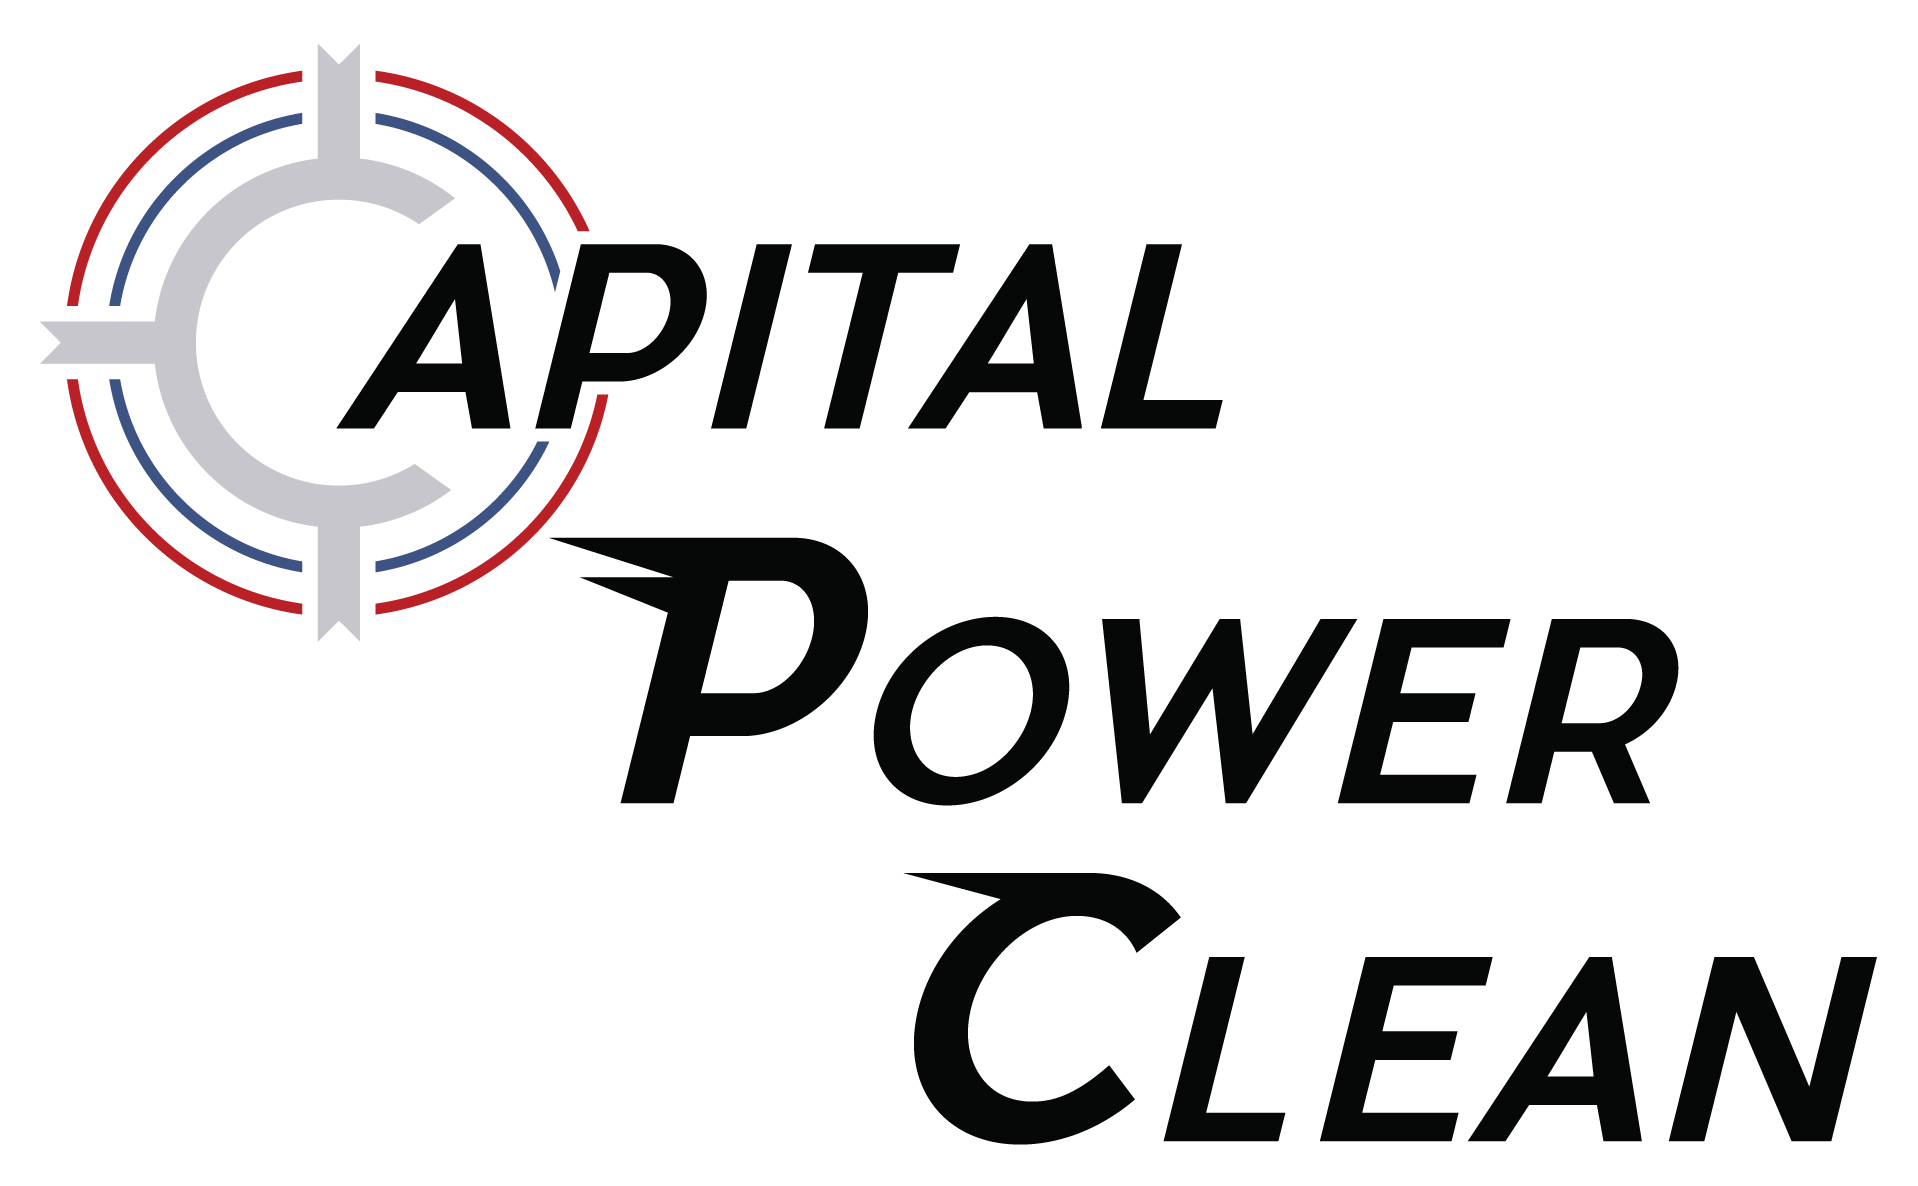 Capital-Power-Clean-2-7-1-1-1-1-1-1-1-1-1-1-1-1-1-1-1-1-1-1-1-1-1-1-1-1-1-1-1-1.png